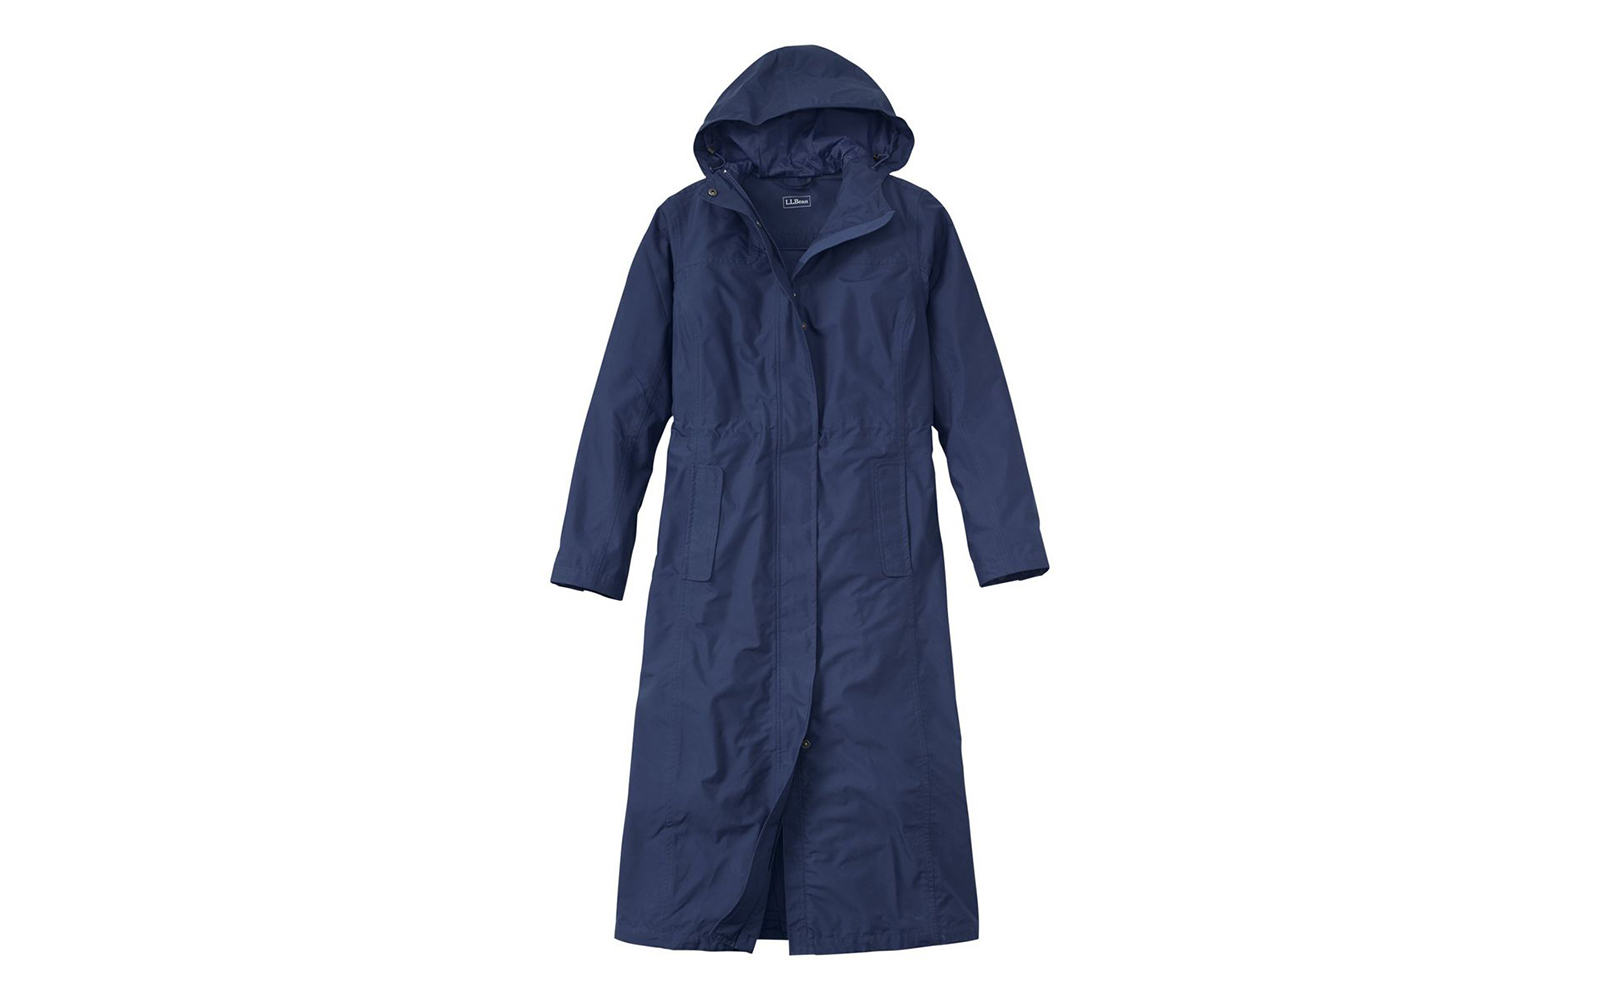 1d07611f849 14 Best Women's Rain Jackets, According to Customers | Travel + Leisure